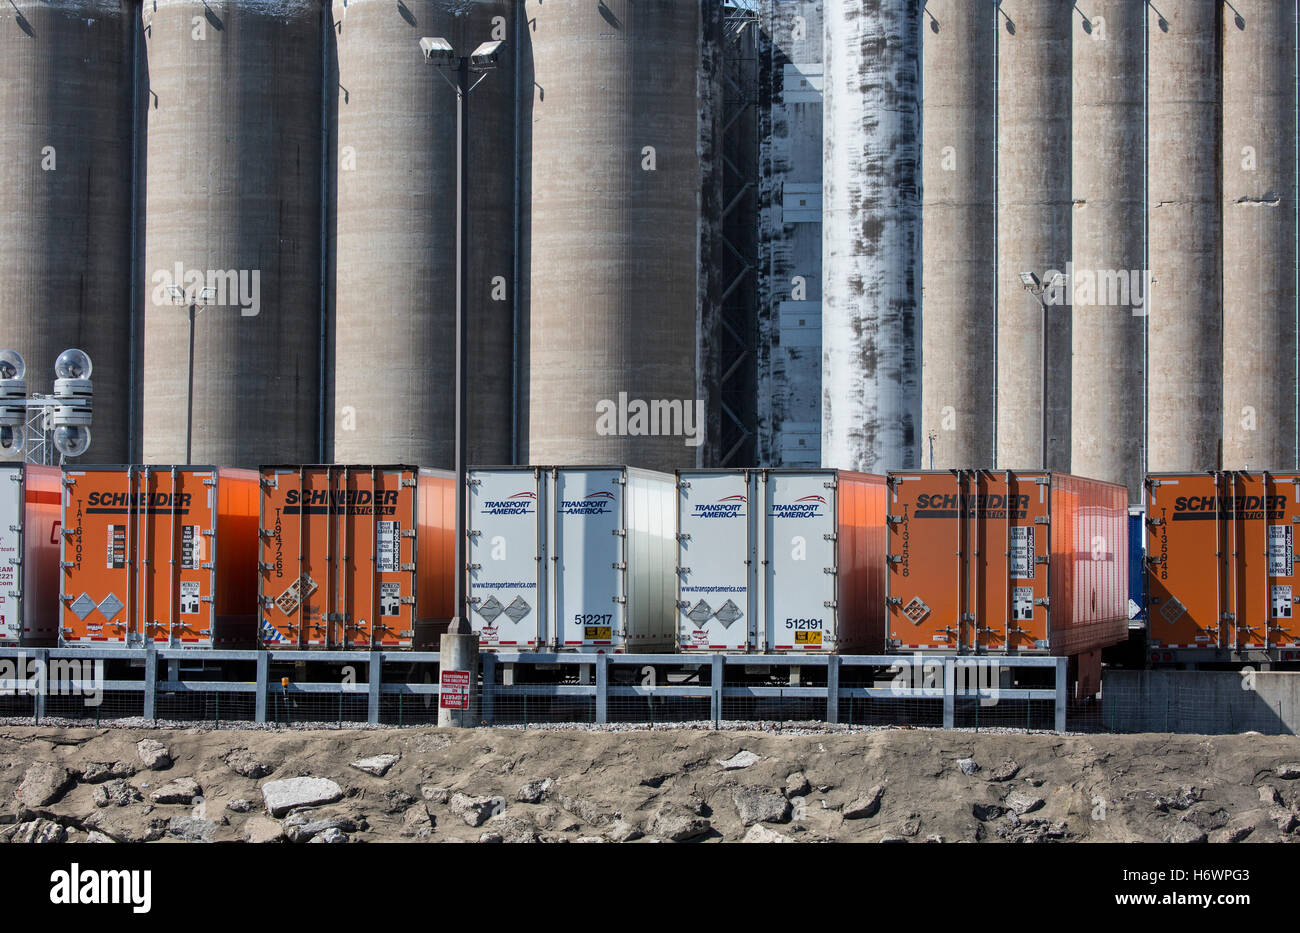 Grain silos with truck trailers in front of the silos. - Stock Image